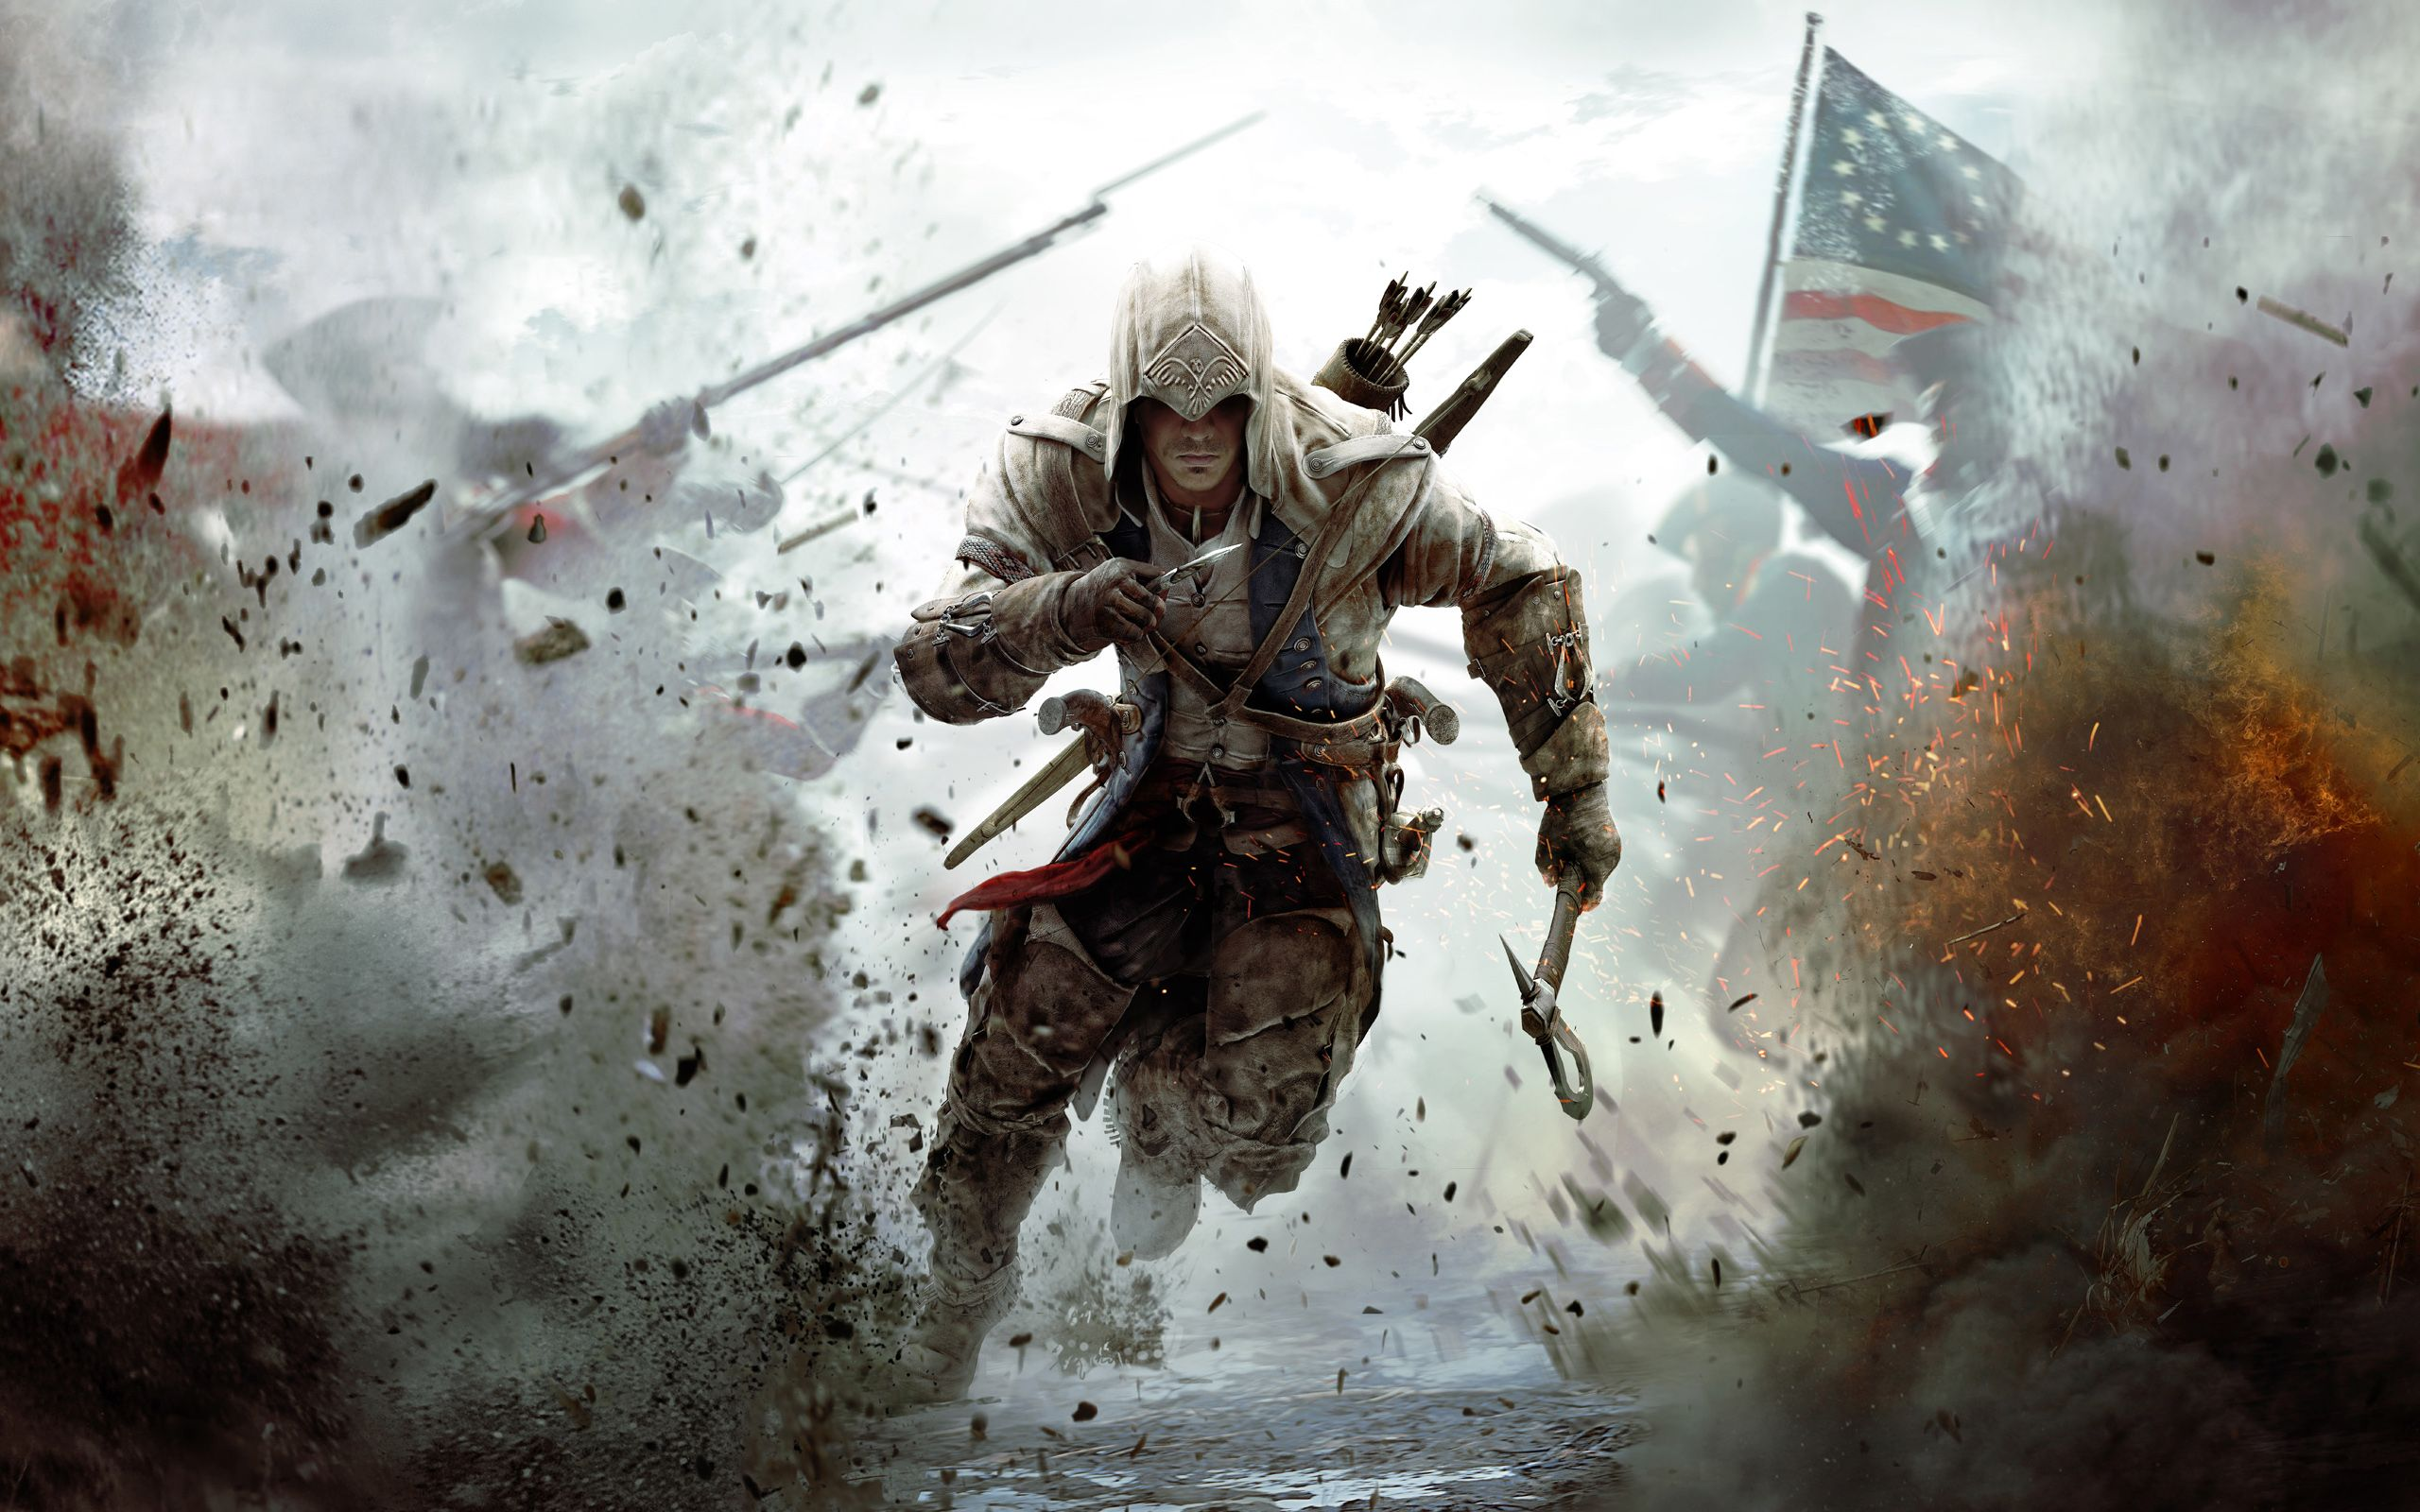 http://www.imgbase.info/images/safe-wallpapers/video_games/assassins_creed/22787_assassins_creed.jpg